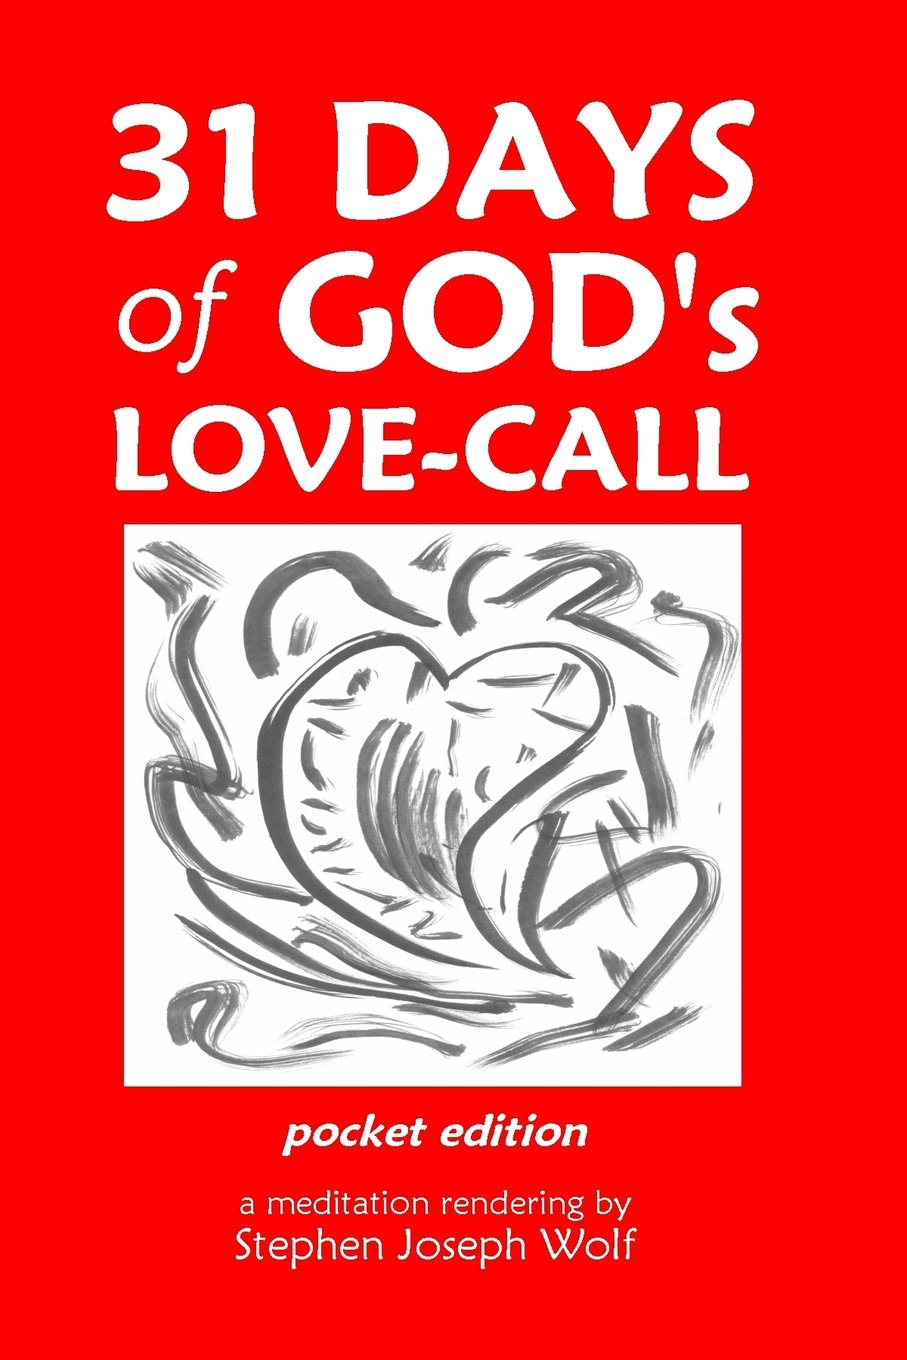 Download 31 Days of God's Love-Call Pocket Edition pdf